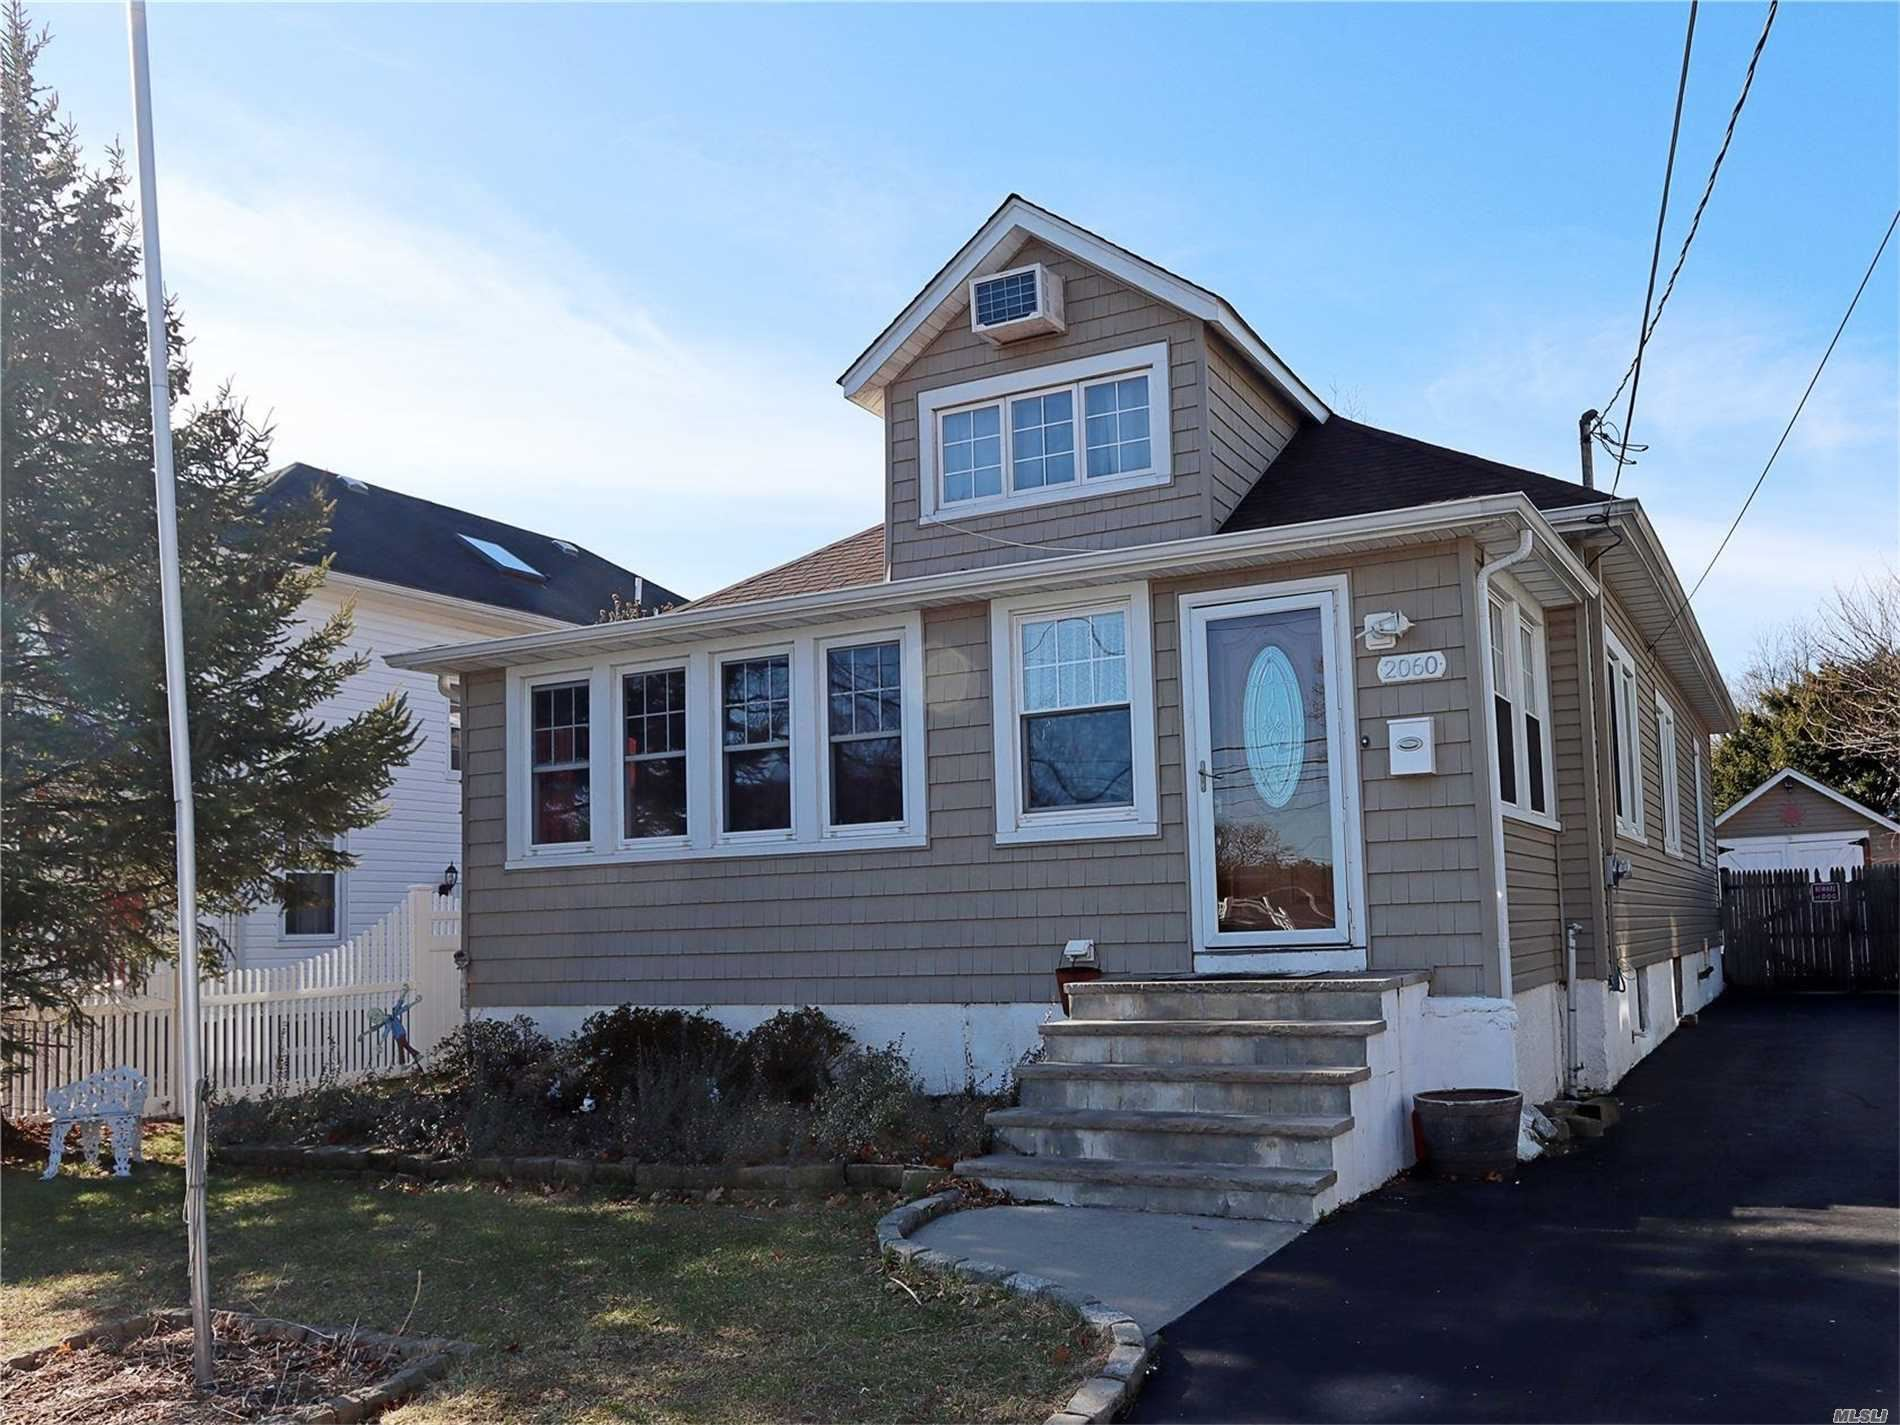 2060 Willoughby Avenue, Wantagh, NY 11793 - MLS#: 3190167